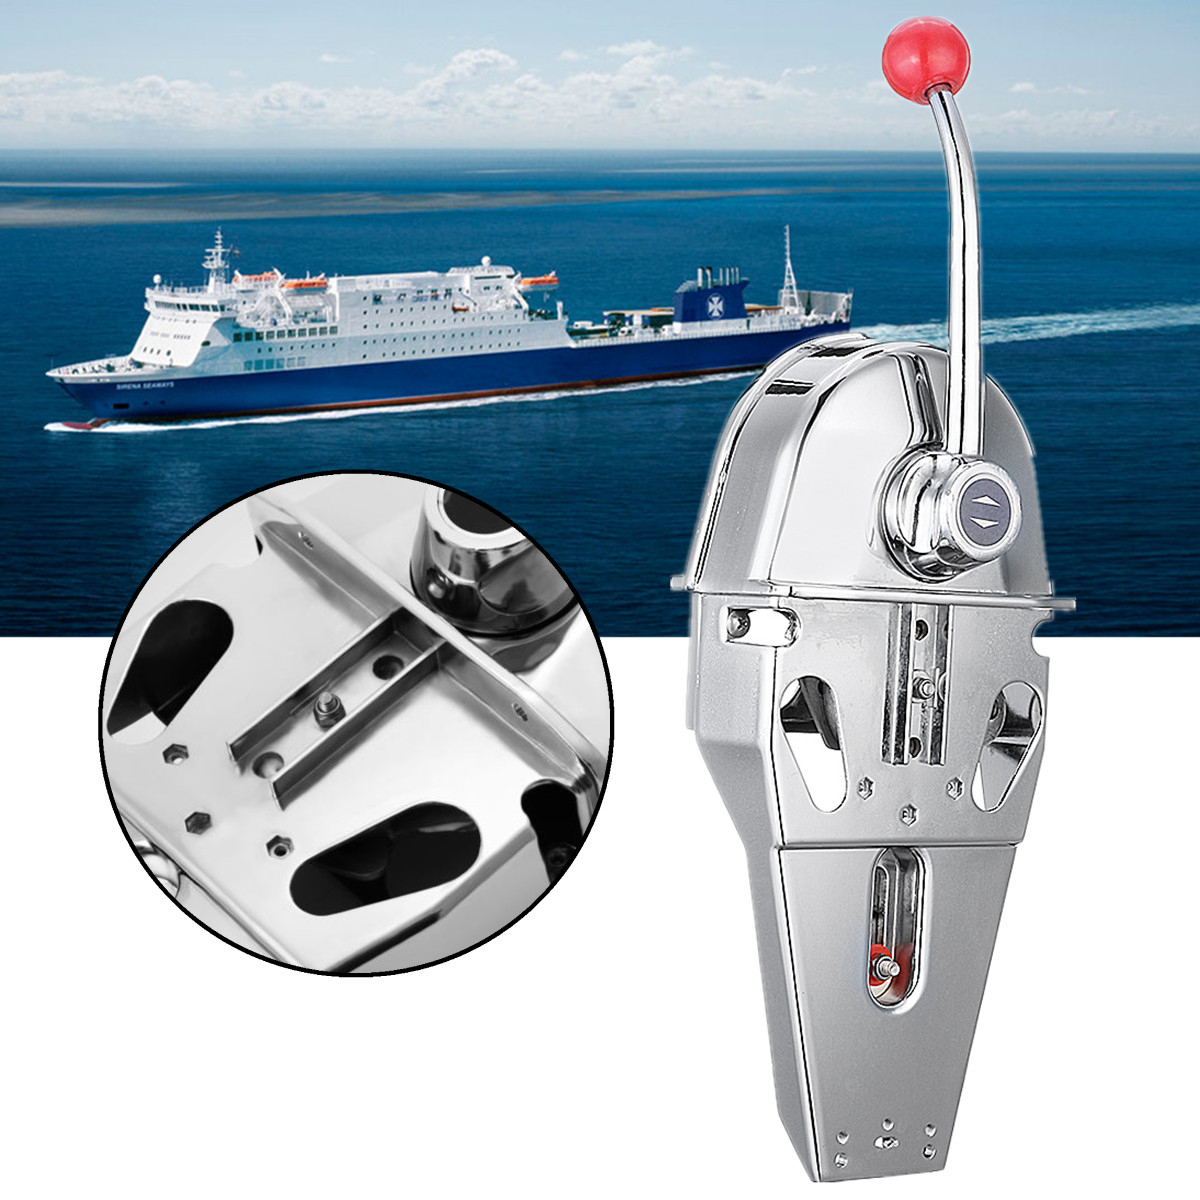 316 Stainless Steel Handle Engine Control Box Top Mount Marine Boat Single Lever Dual Action Built-in Friction 45.5x15x12cm316 Stainless Steel Handle Engine Control Box Top Mount Marine Boat Single Lever Dual Action Built-in Friction 45.5x15x12cm